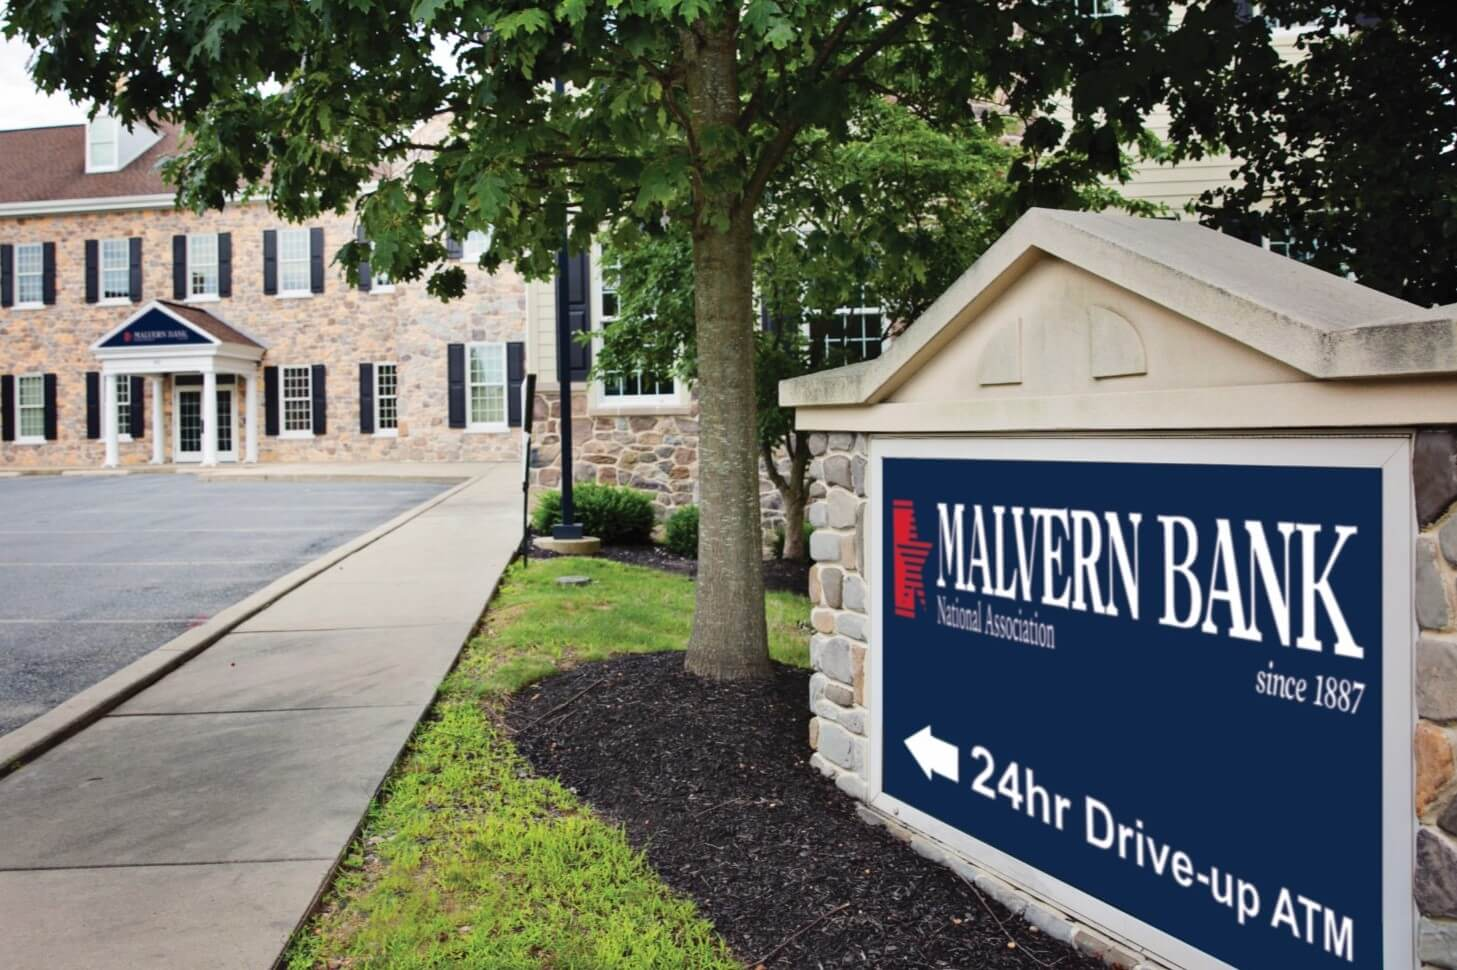 DELCO Careers – Malvern Bank, National Association